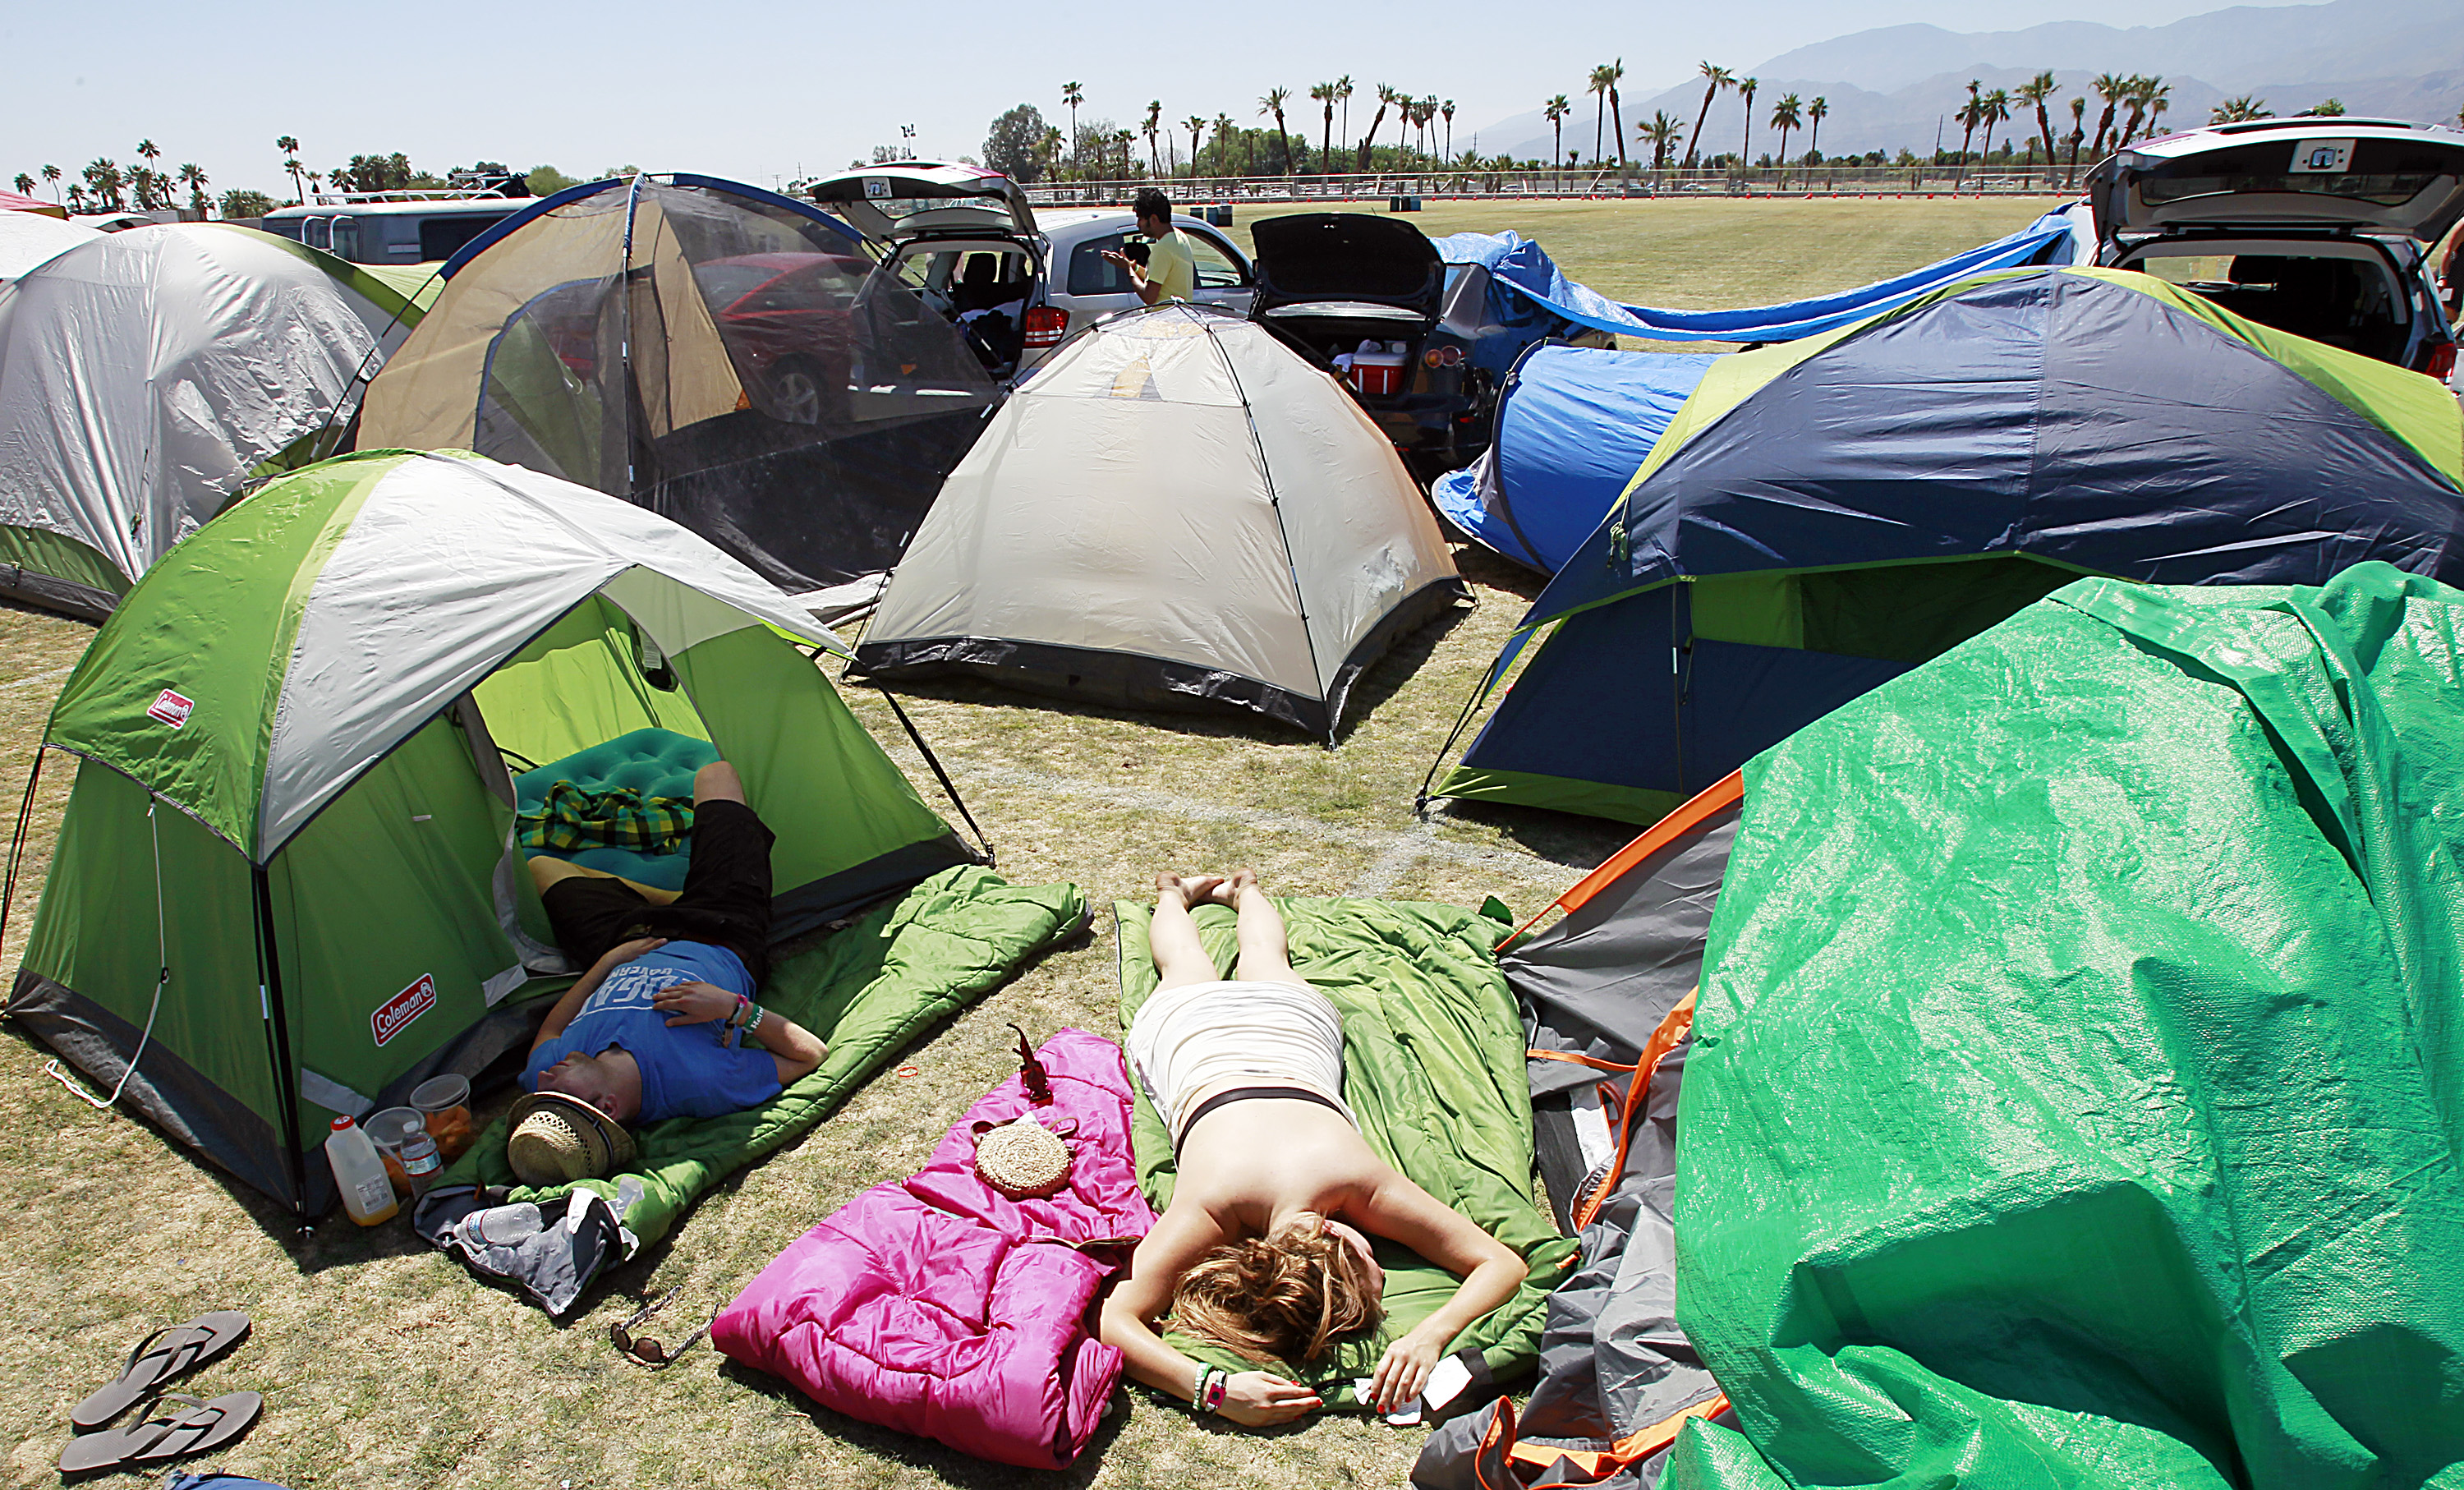 Festivalgoers get some sun and sleep at an onsite campground Sunday, April 17, 2011, at the Coachel